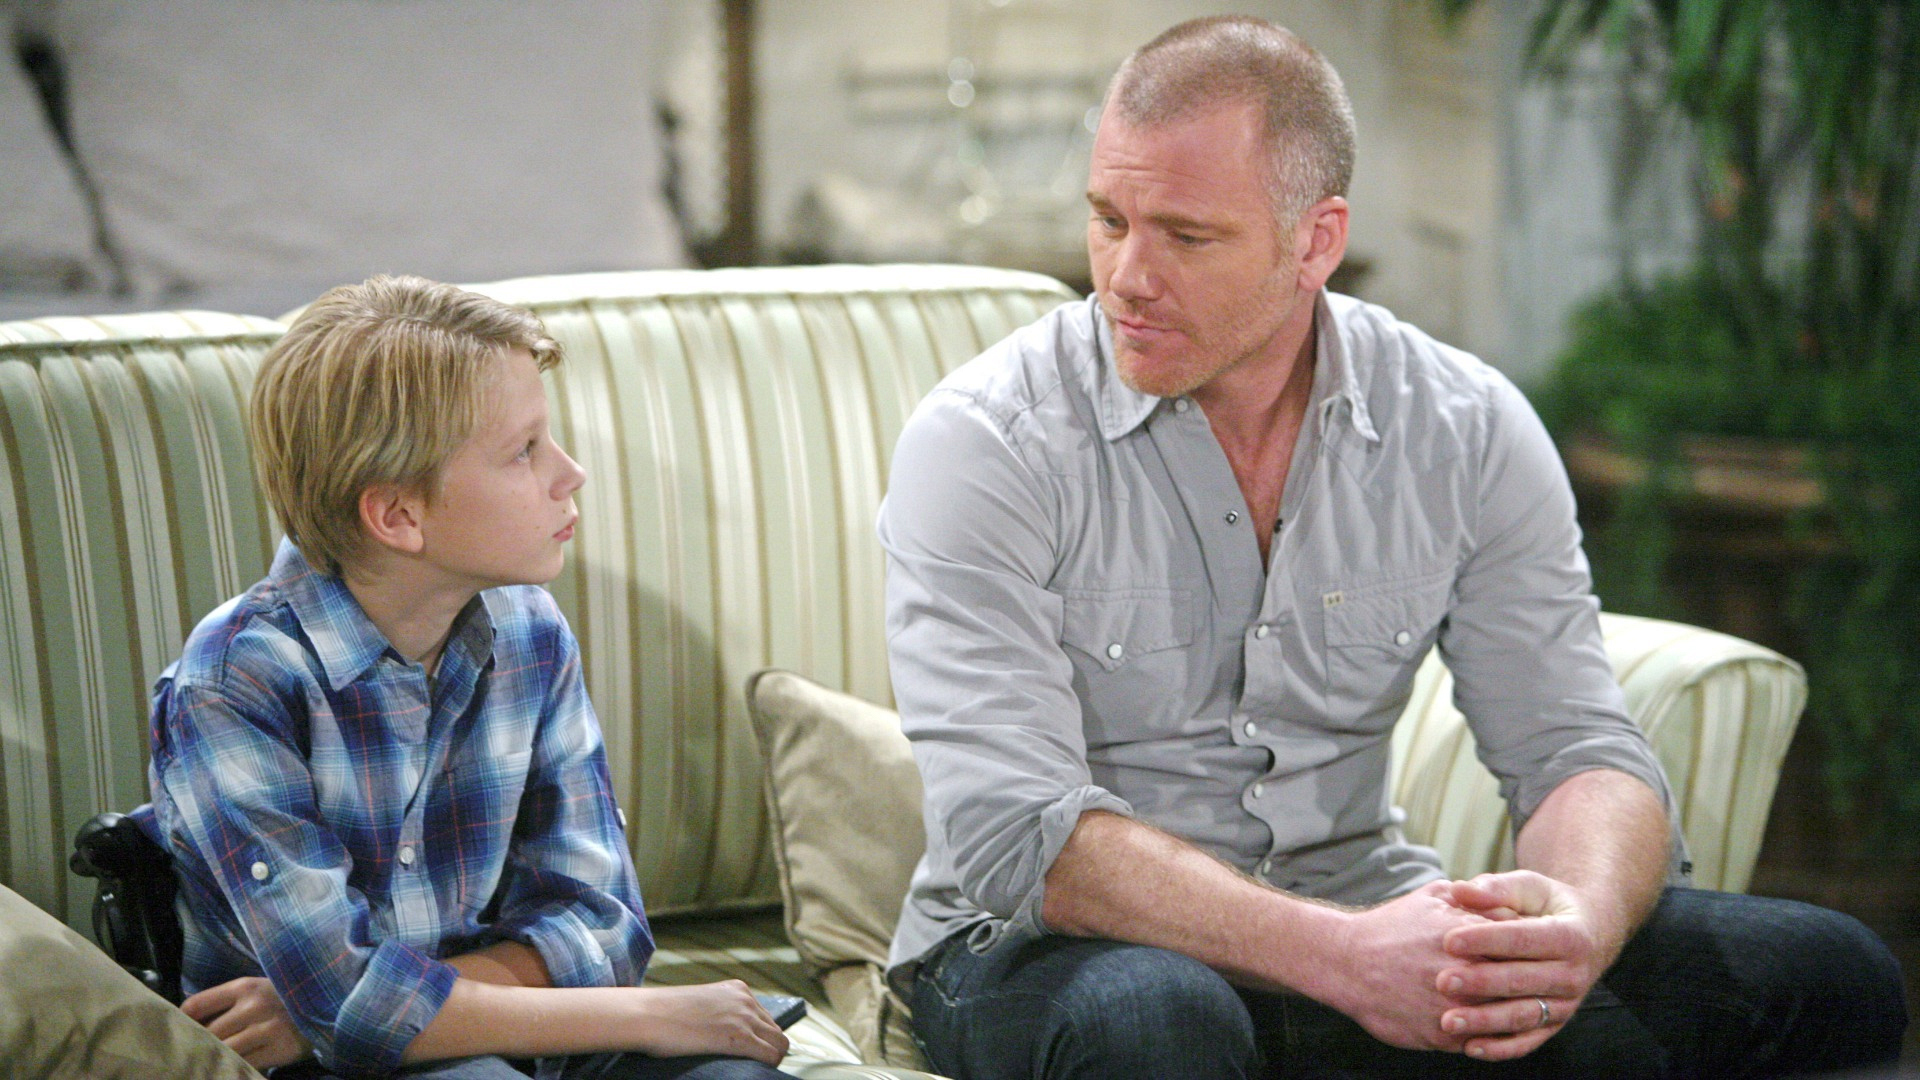 Stitch's son came to live with him on The Young and the Restless.